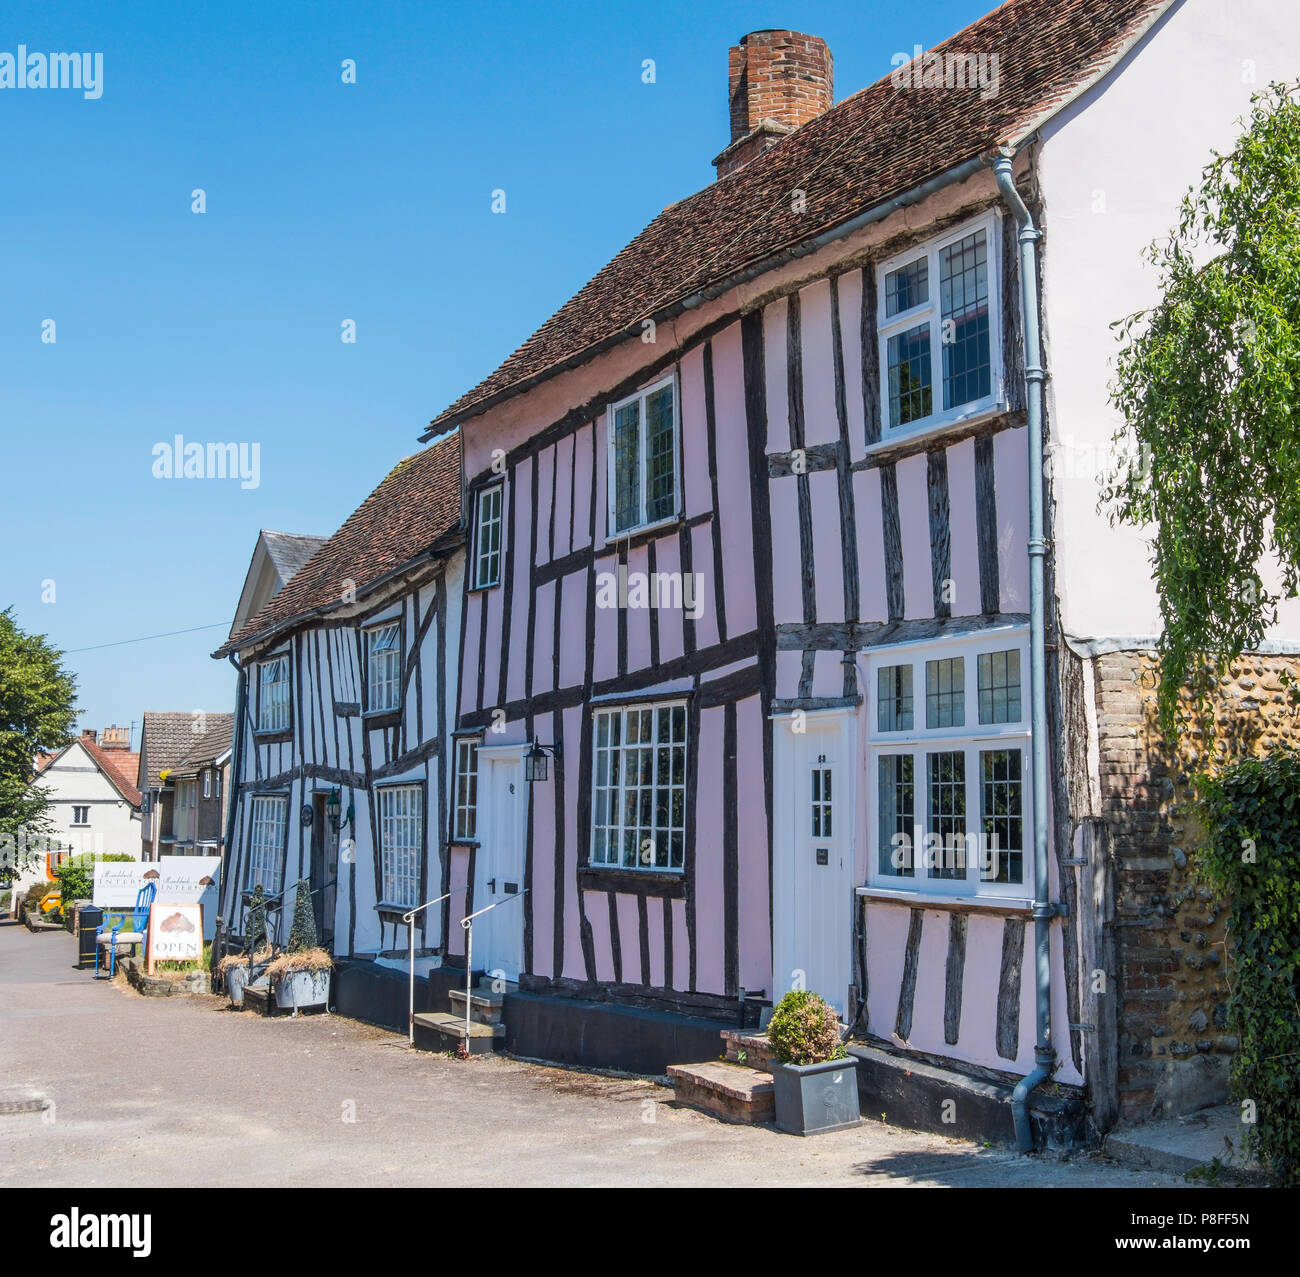 Timber framed buildings in Lavenham a town noted for its 15th-century church and half-timbered medieval cottages. - Stock Image